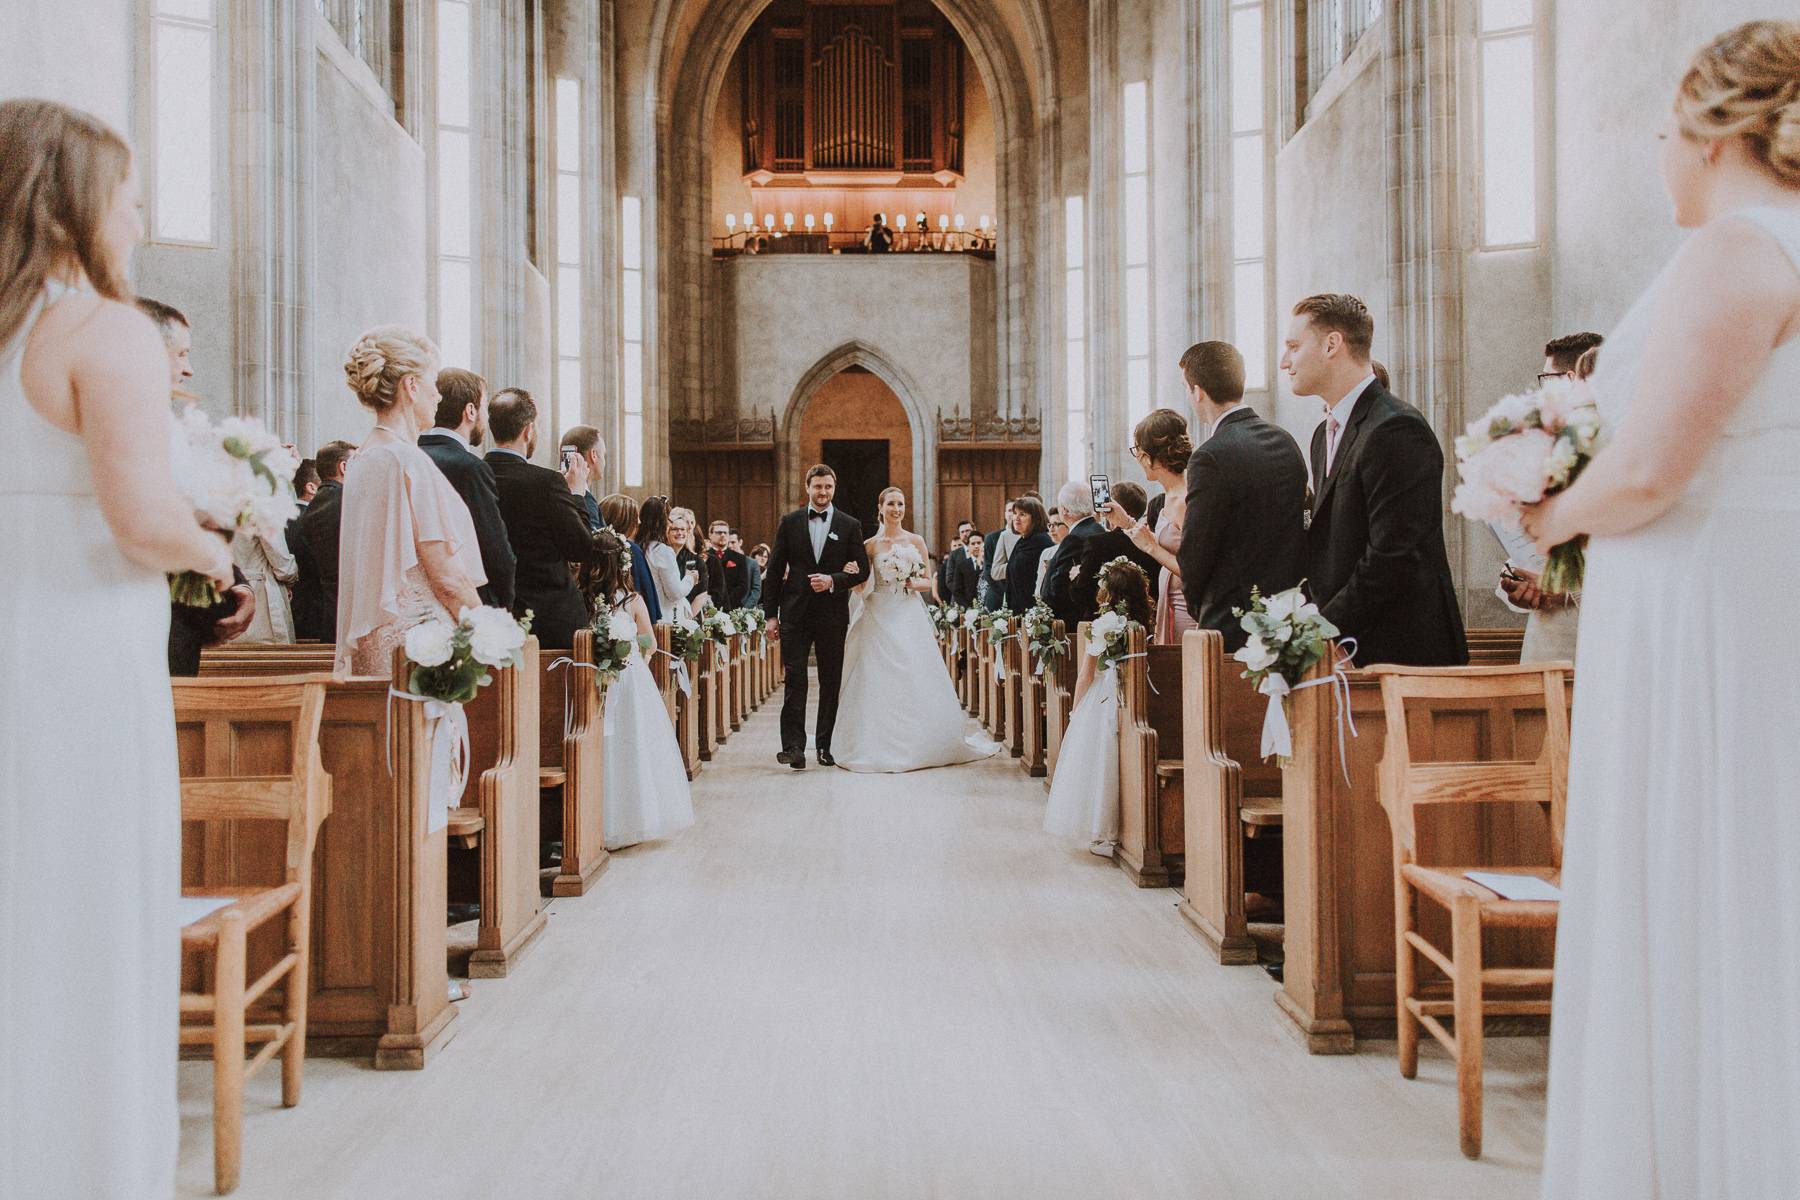 The Perfect Wedding.How To Officiate The Perfect Wedding Ceremony